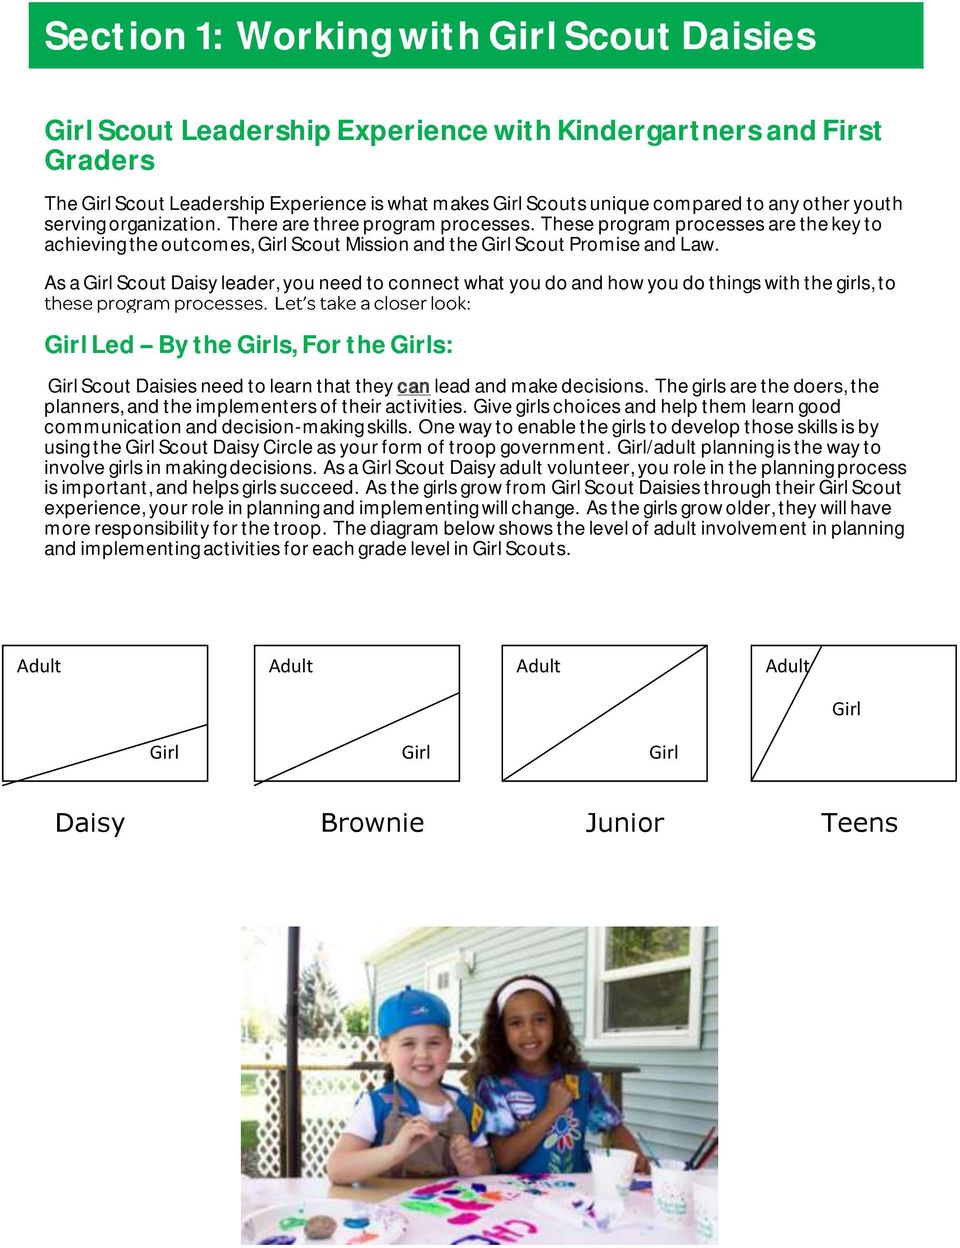 As a Girl Scout Daisy leader, you need to connect what you do and how you do things with the girls, to Girl Led By the Girls, For the Girls: Girl Scout Daisies need to learn that they can lead and